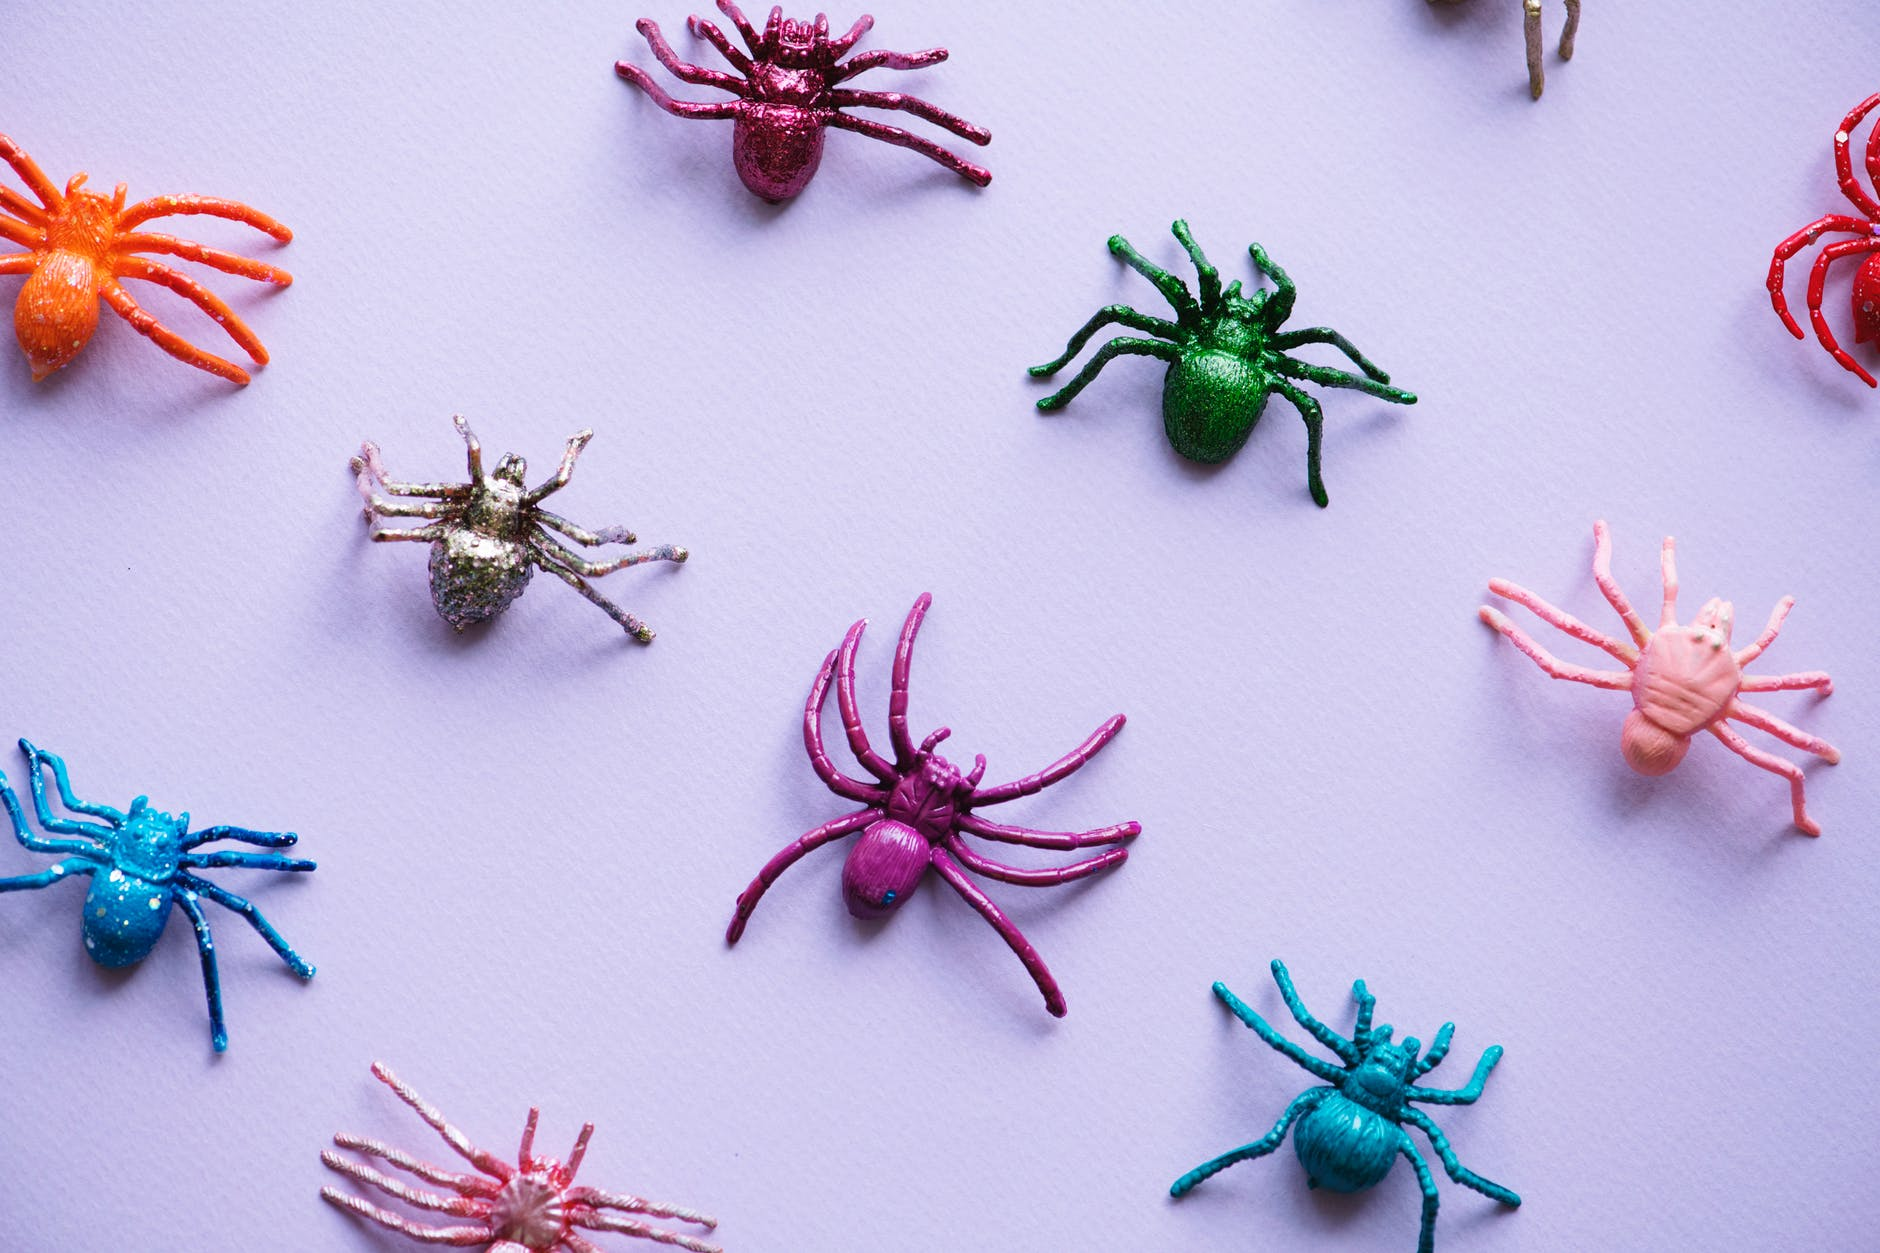 assorted color spider plastic toy collection